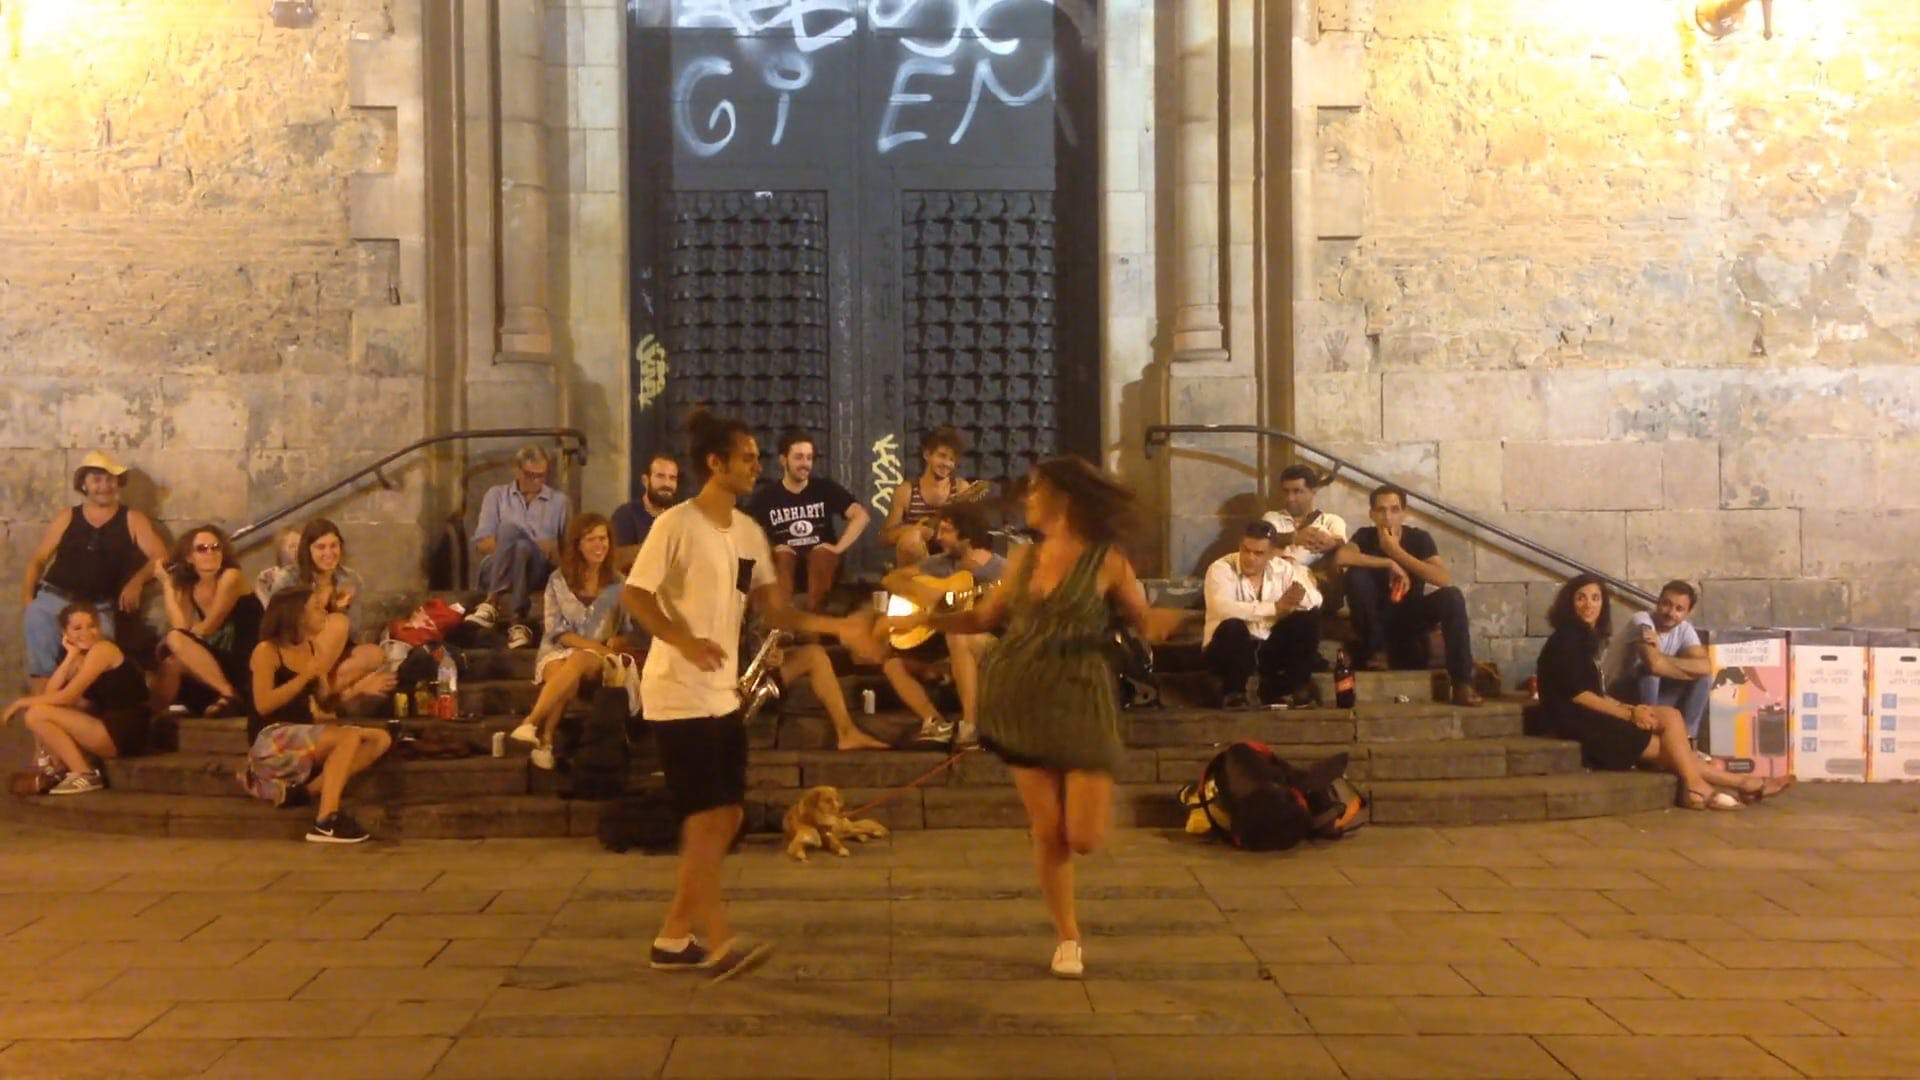 Musicians And Dancers On The Street